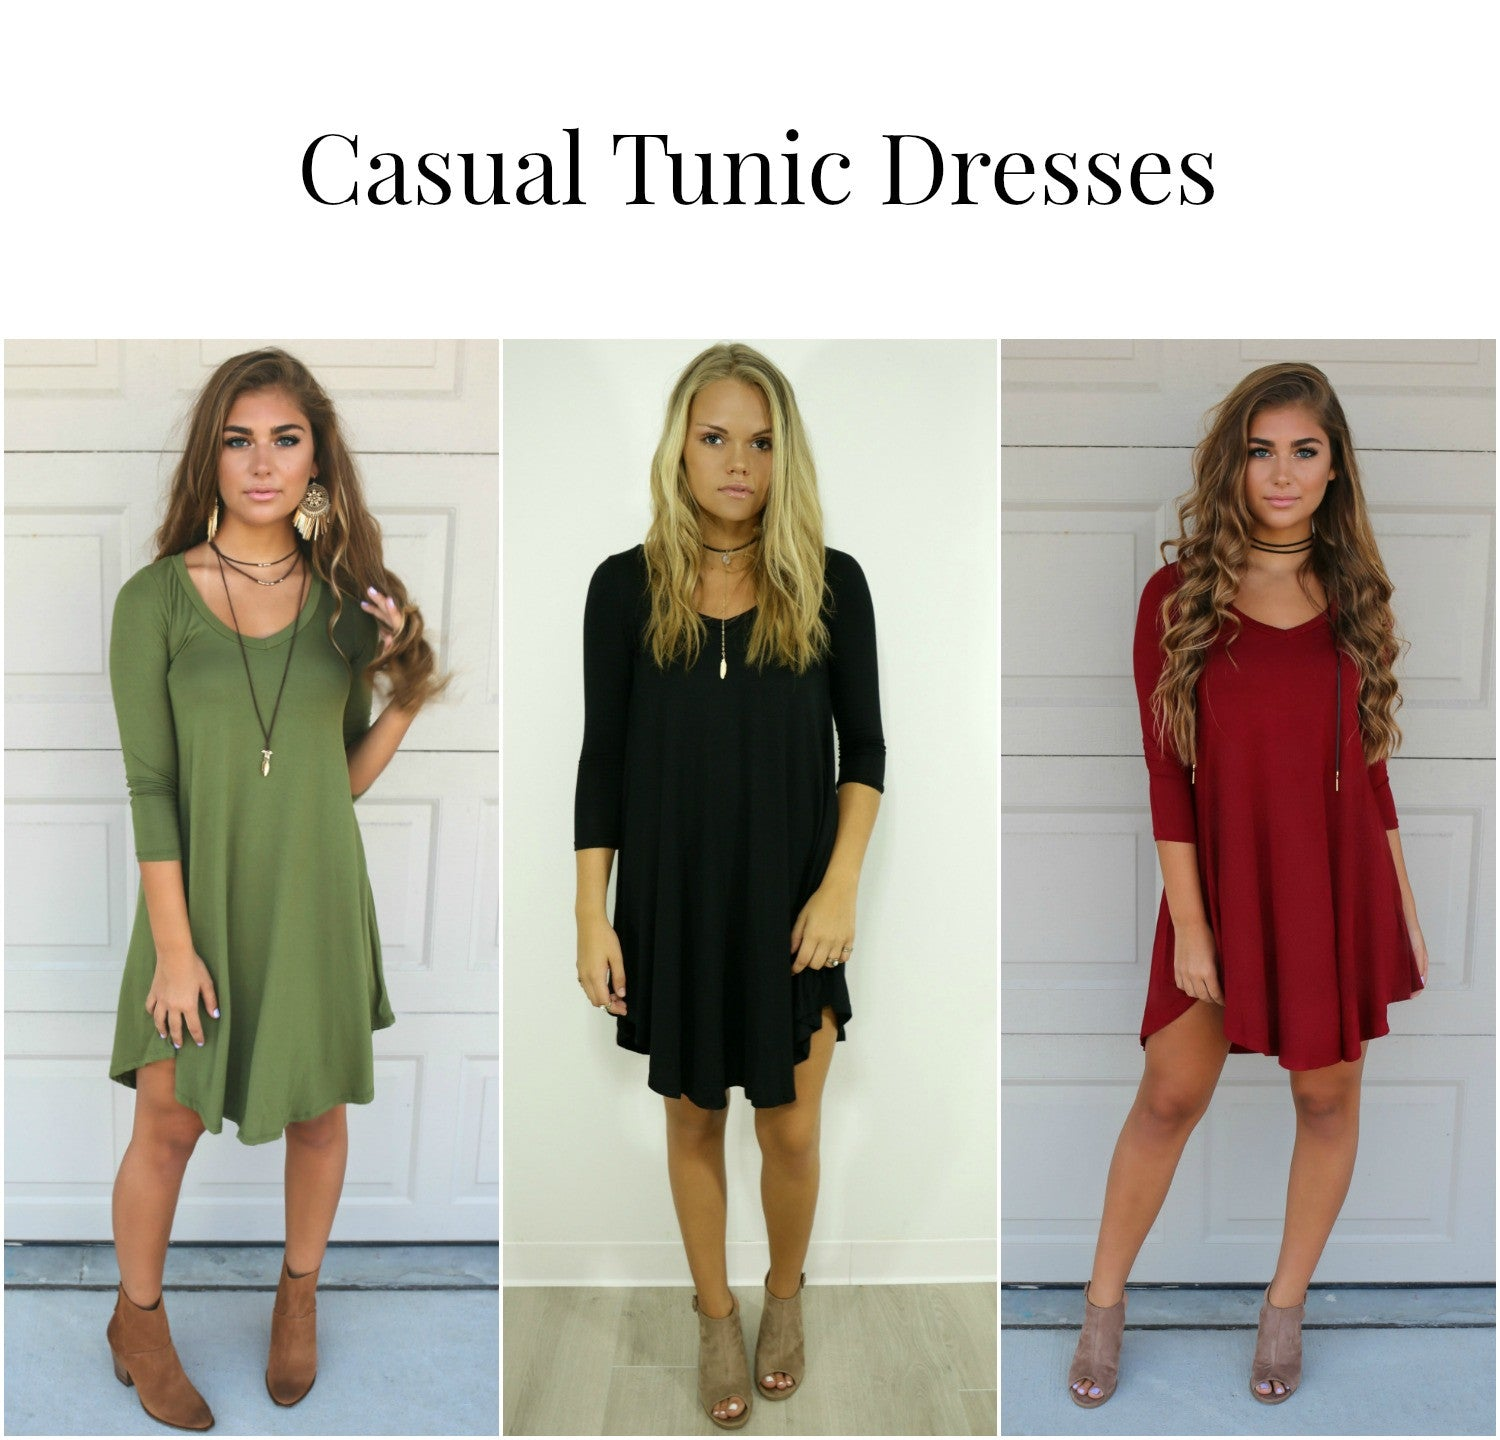 Casual Tunic Dresses